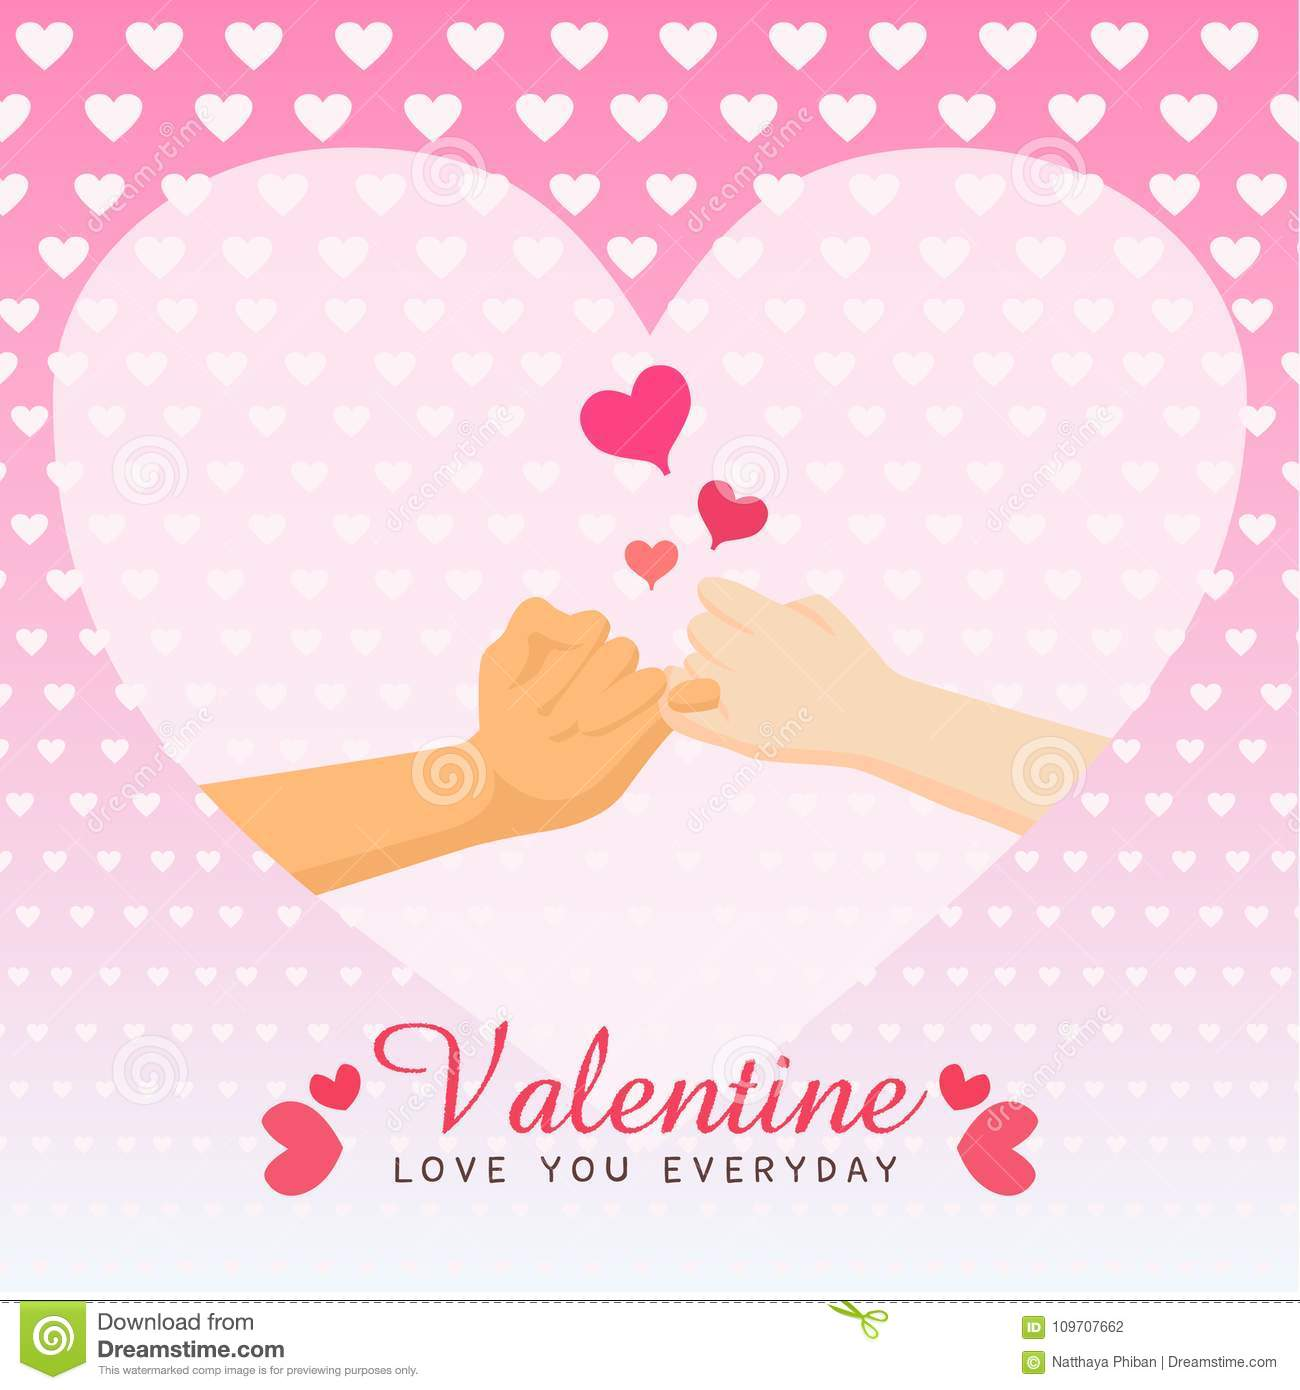 Valentine Stock Vector Illustration Of Holiday Banner 109707662